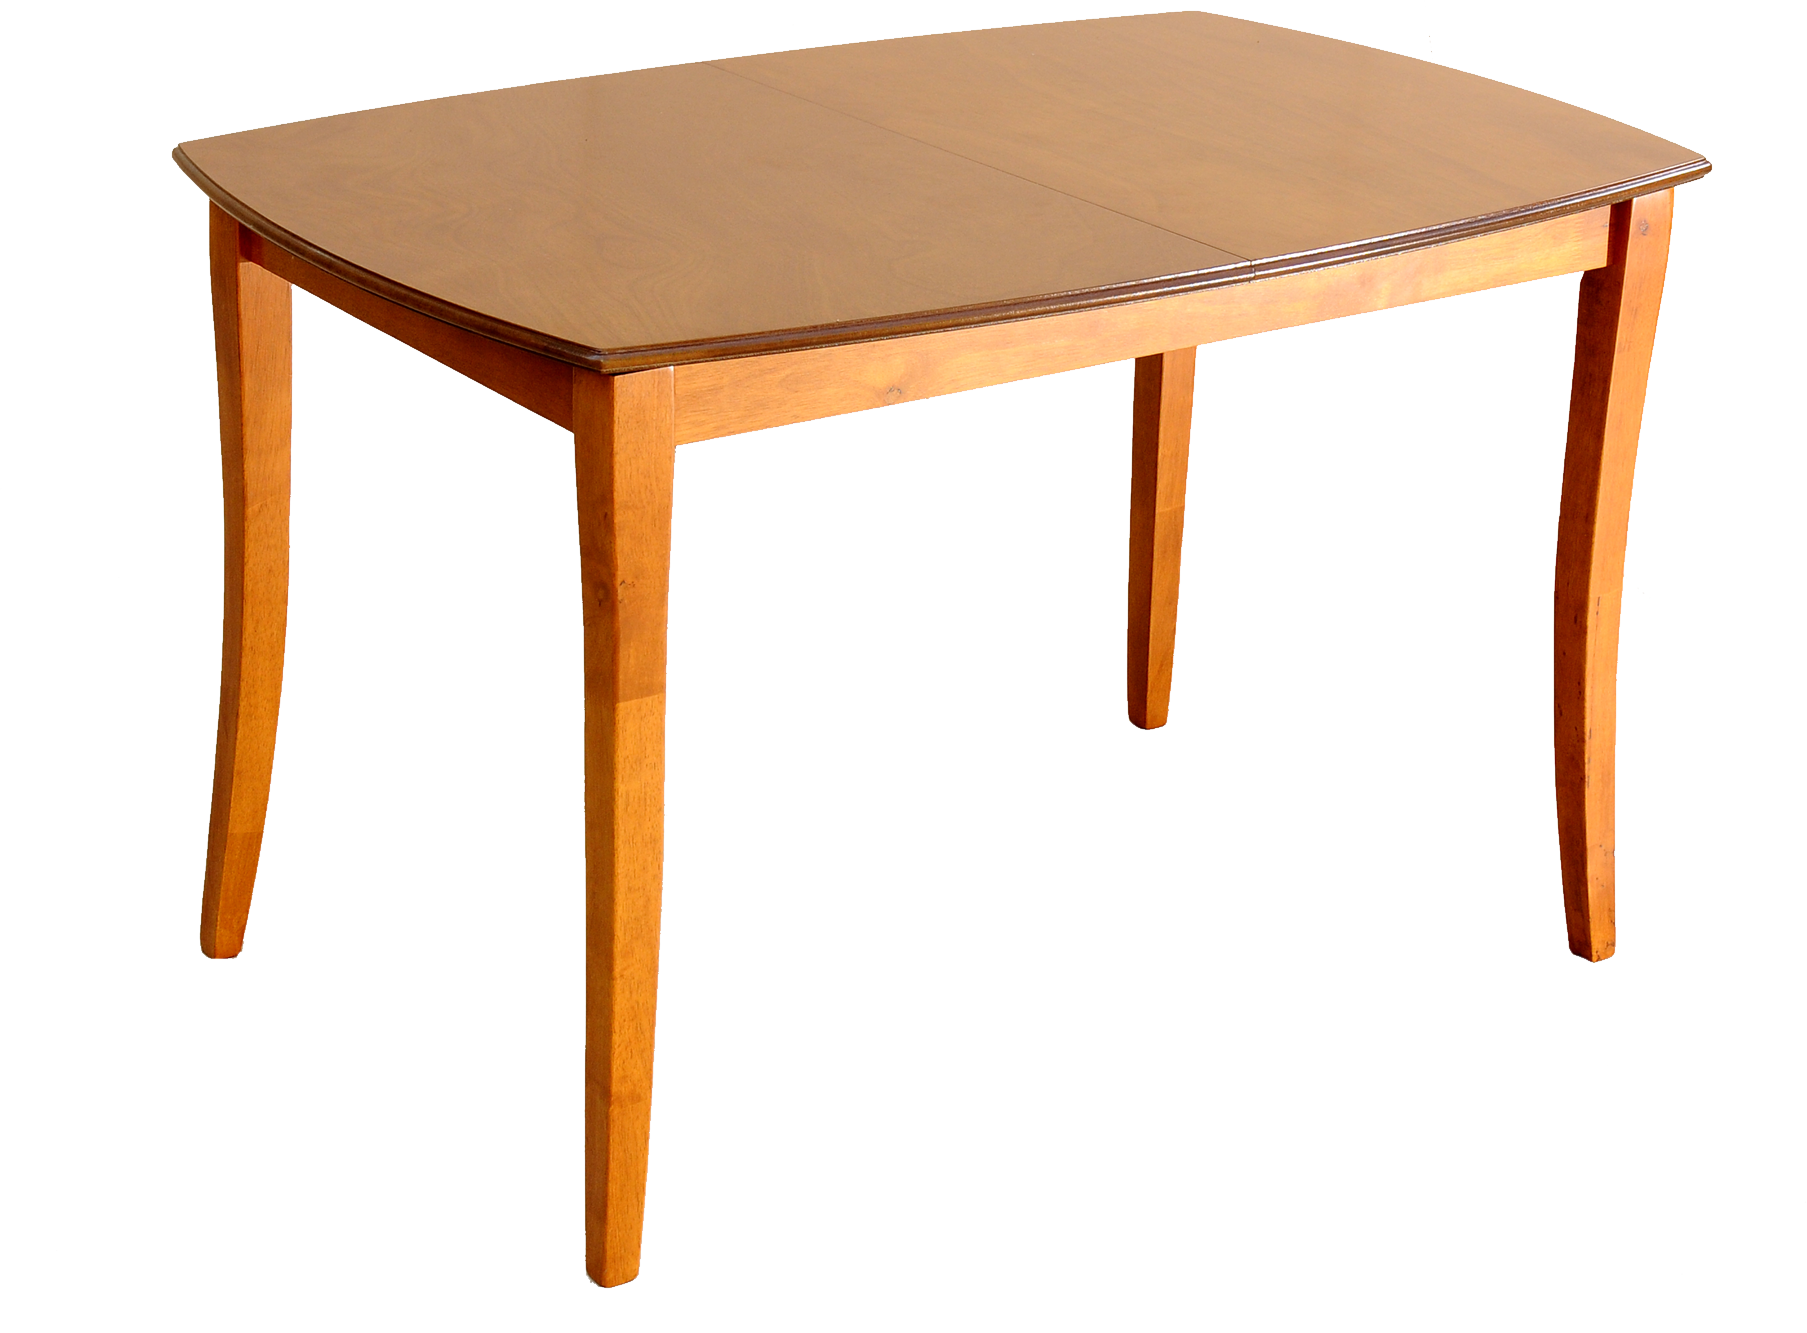 Wooden Table Png Image Simple Furniture Design Wooden Bedroom Furniture Furniture